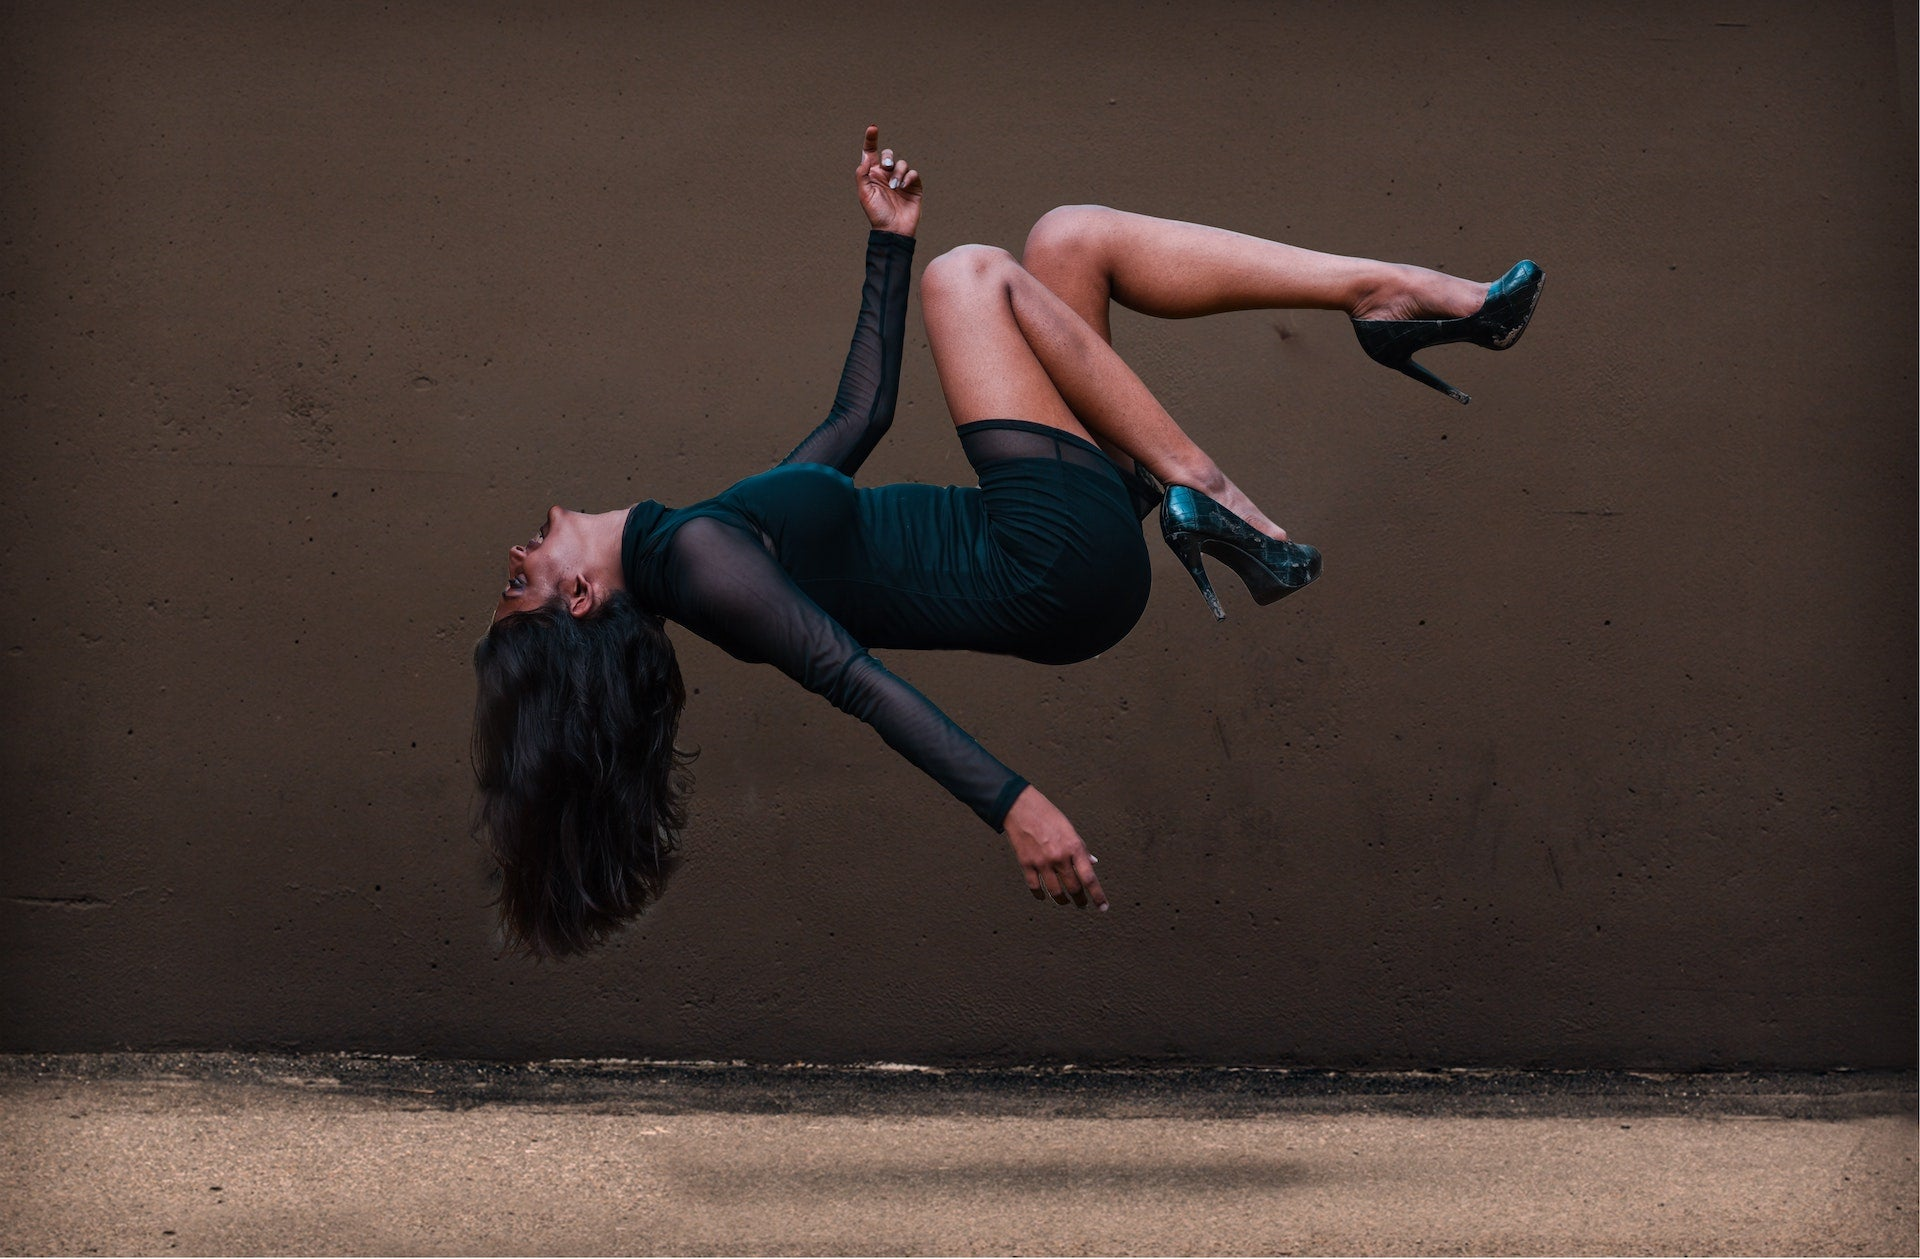 How to Do Levitation Photography without Using Photoshop